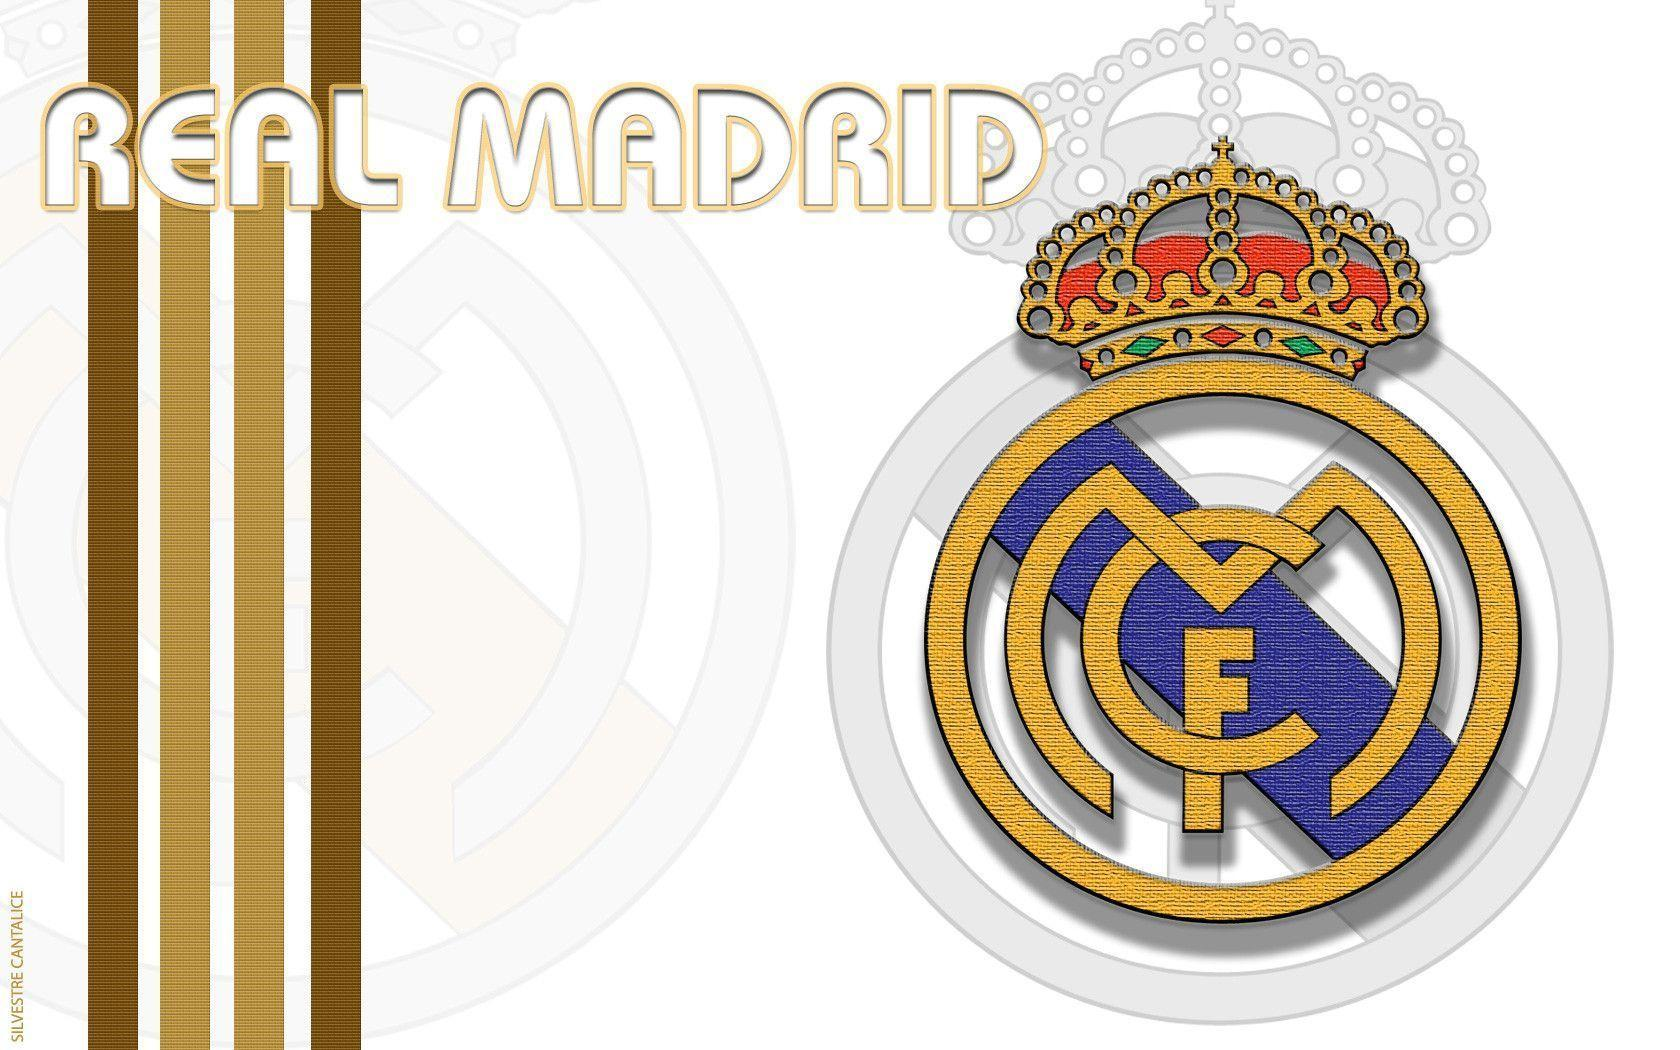 Real Madrid Logo Wallpaper Backgrounds